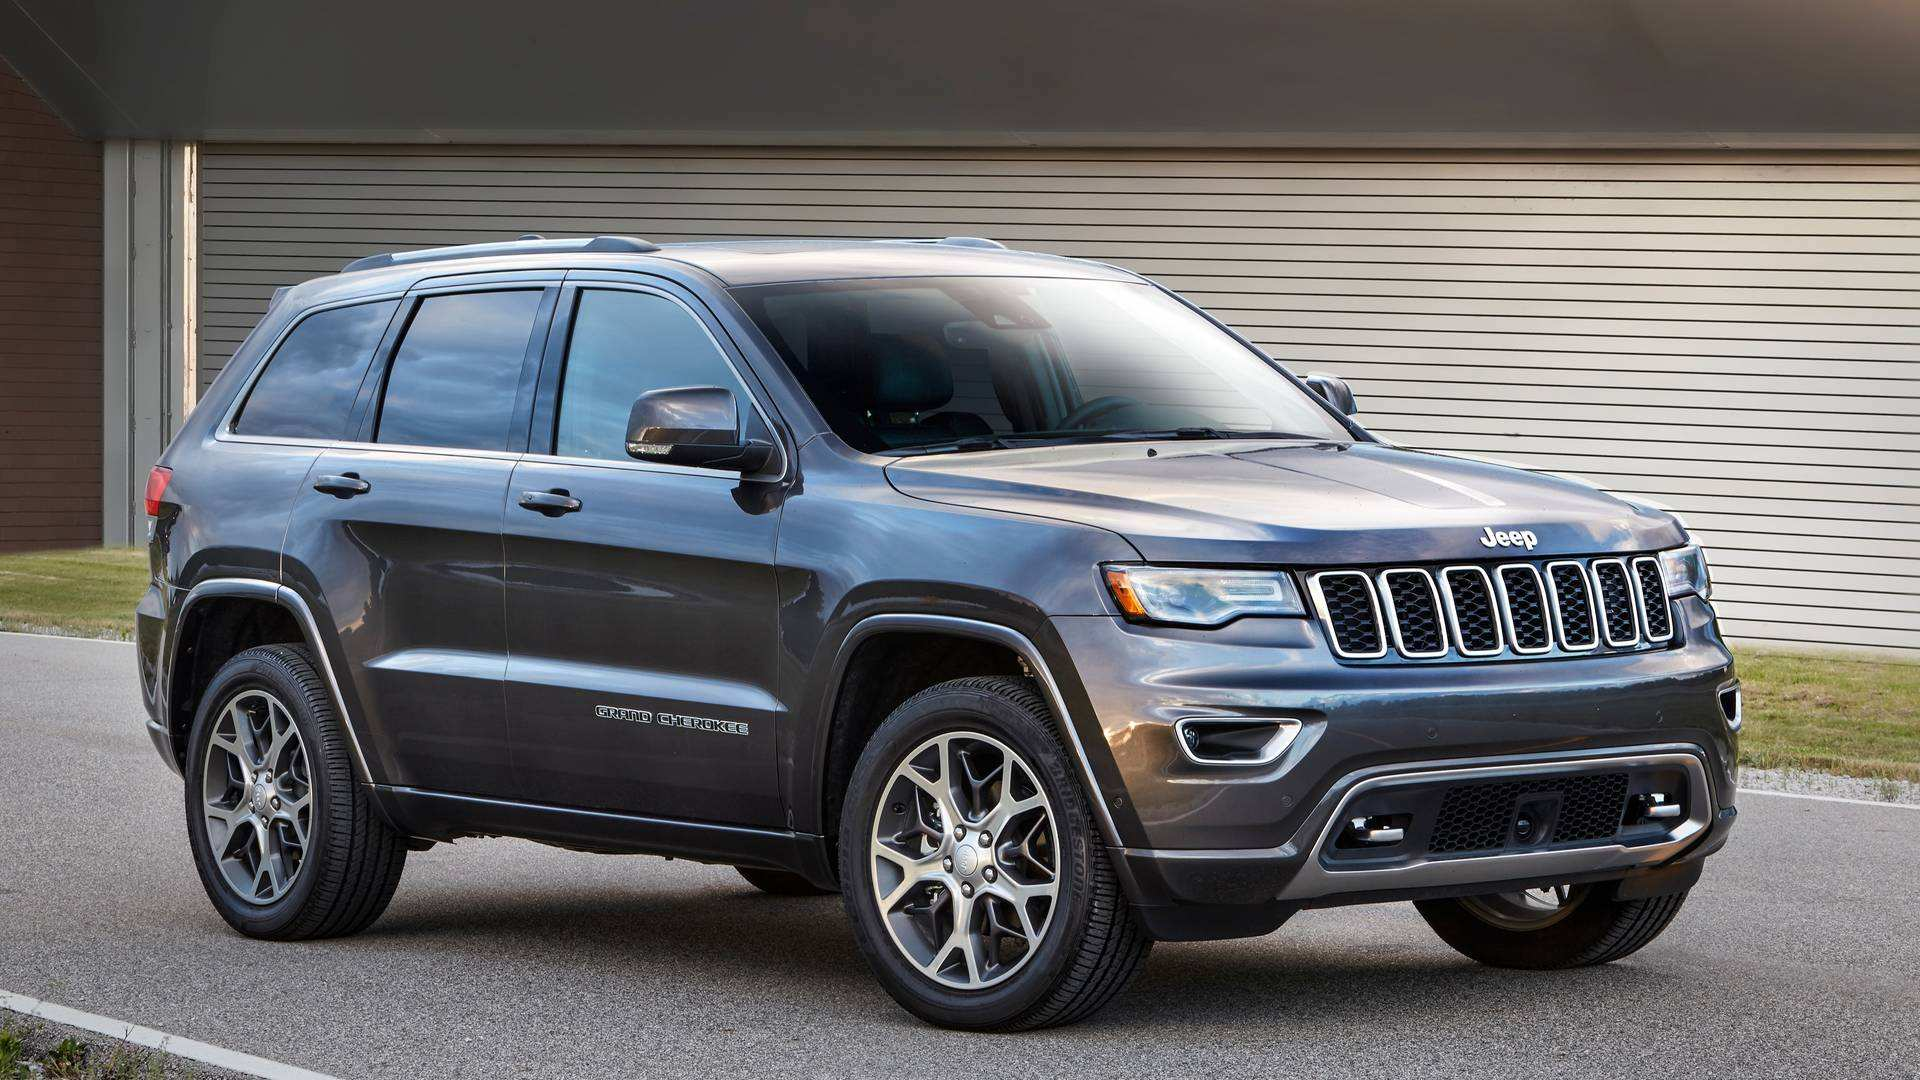 24 All New Jeep Grand Cherokee 2020 Spy Shots Rumors with Jeep Grand Cherokee 2020 Spy Shots